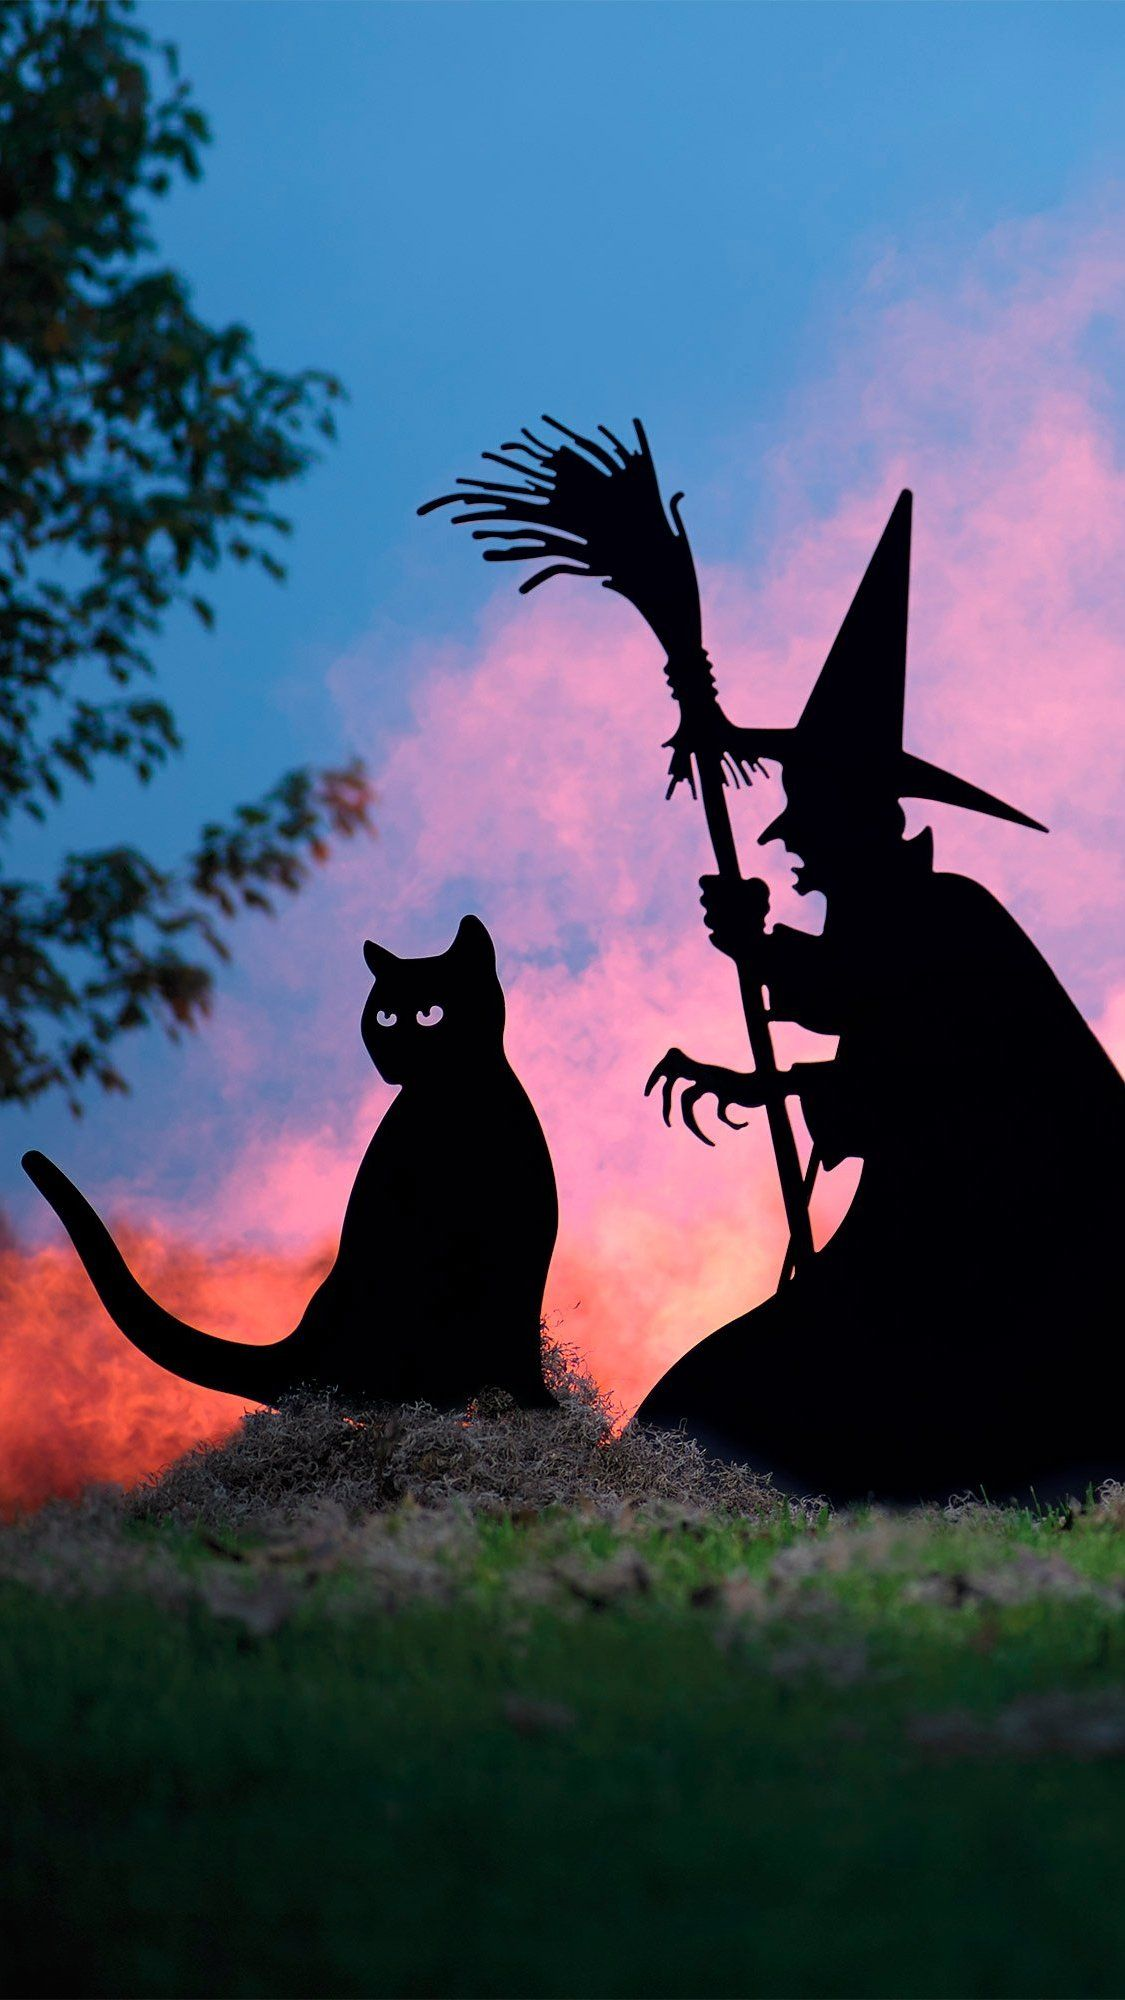 Halloween Witch And Cat Silhouettes Halloween Silhouettes